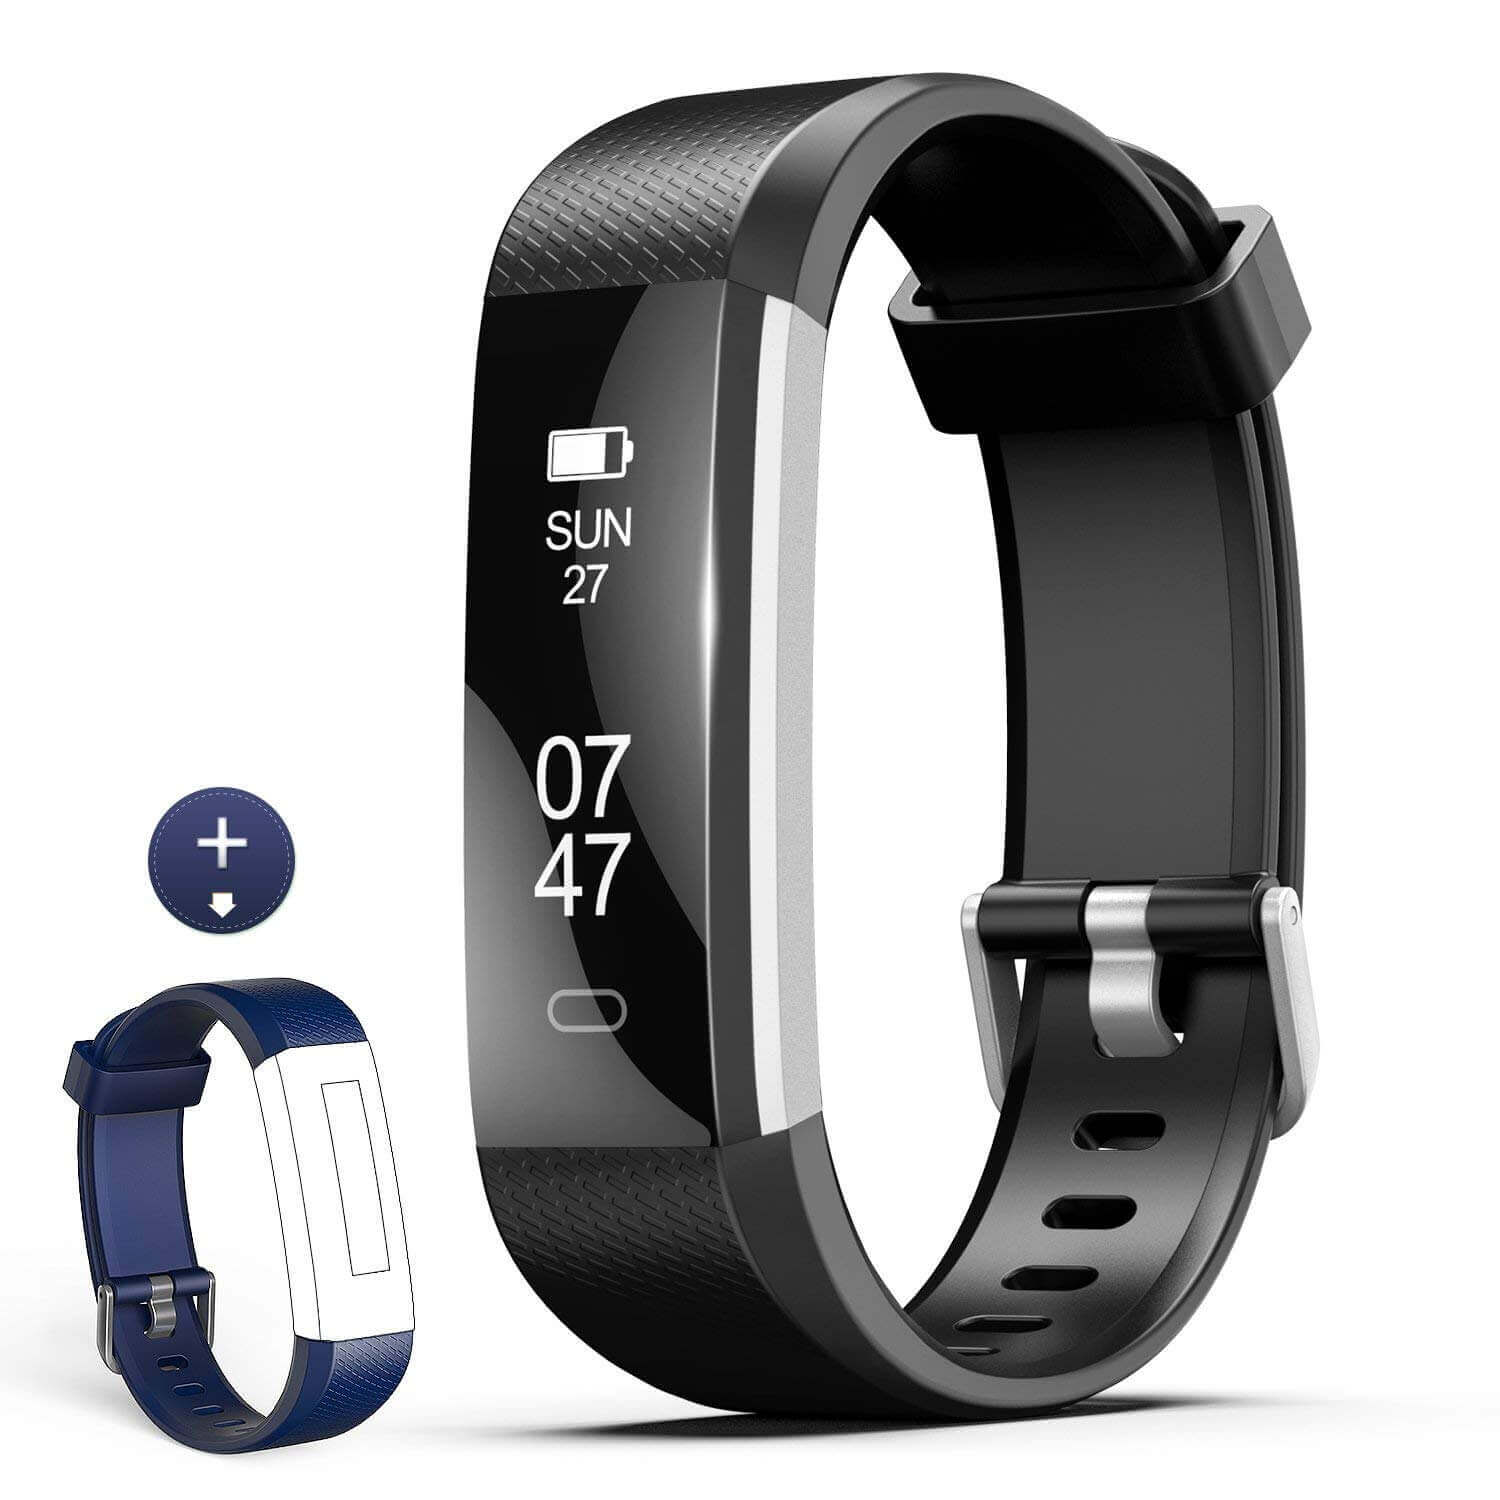 Fitbit Fitness Tracker Smartwatch with Sleep Tracking